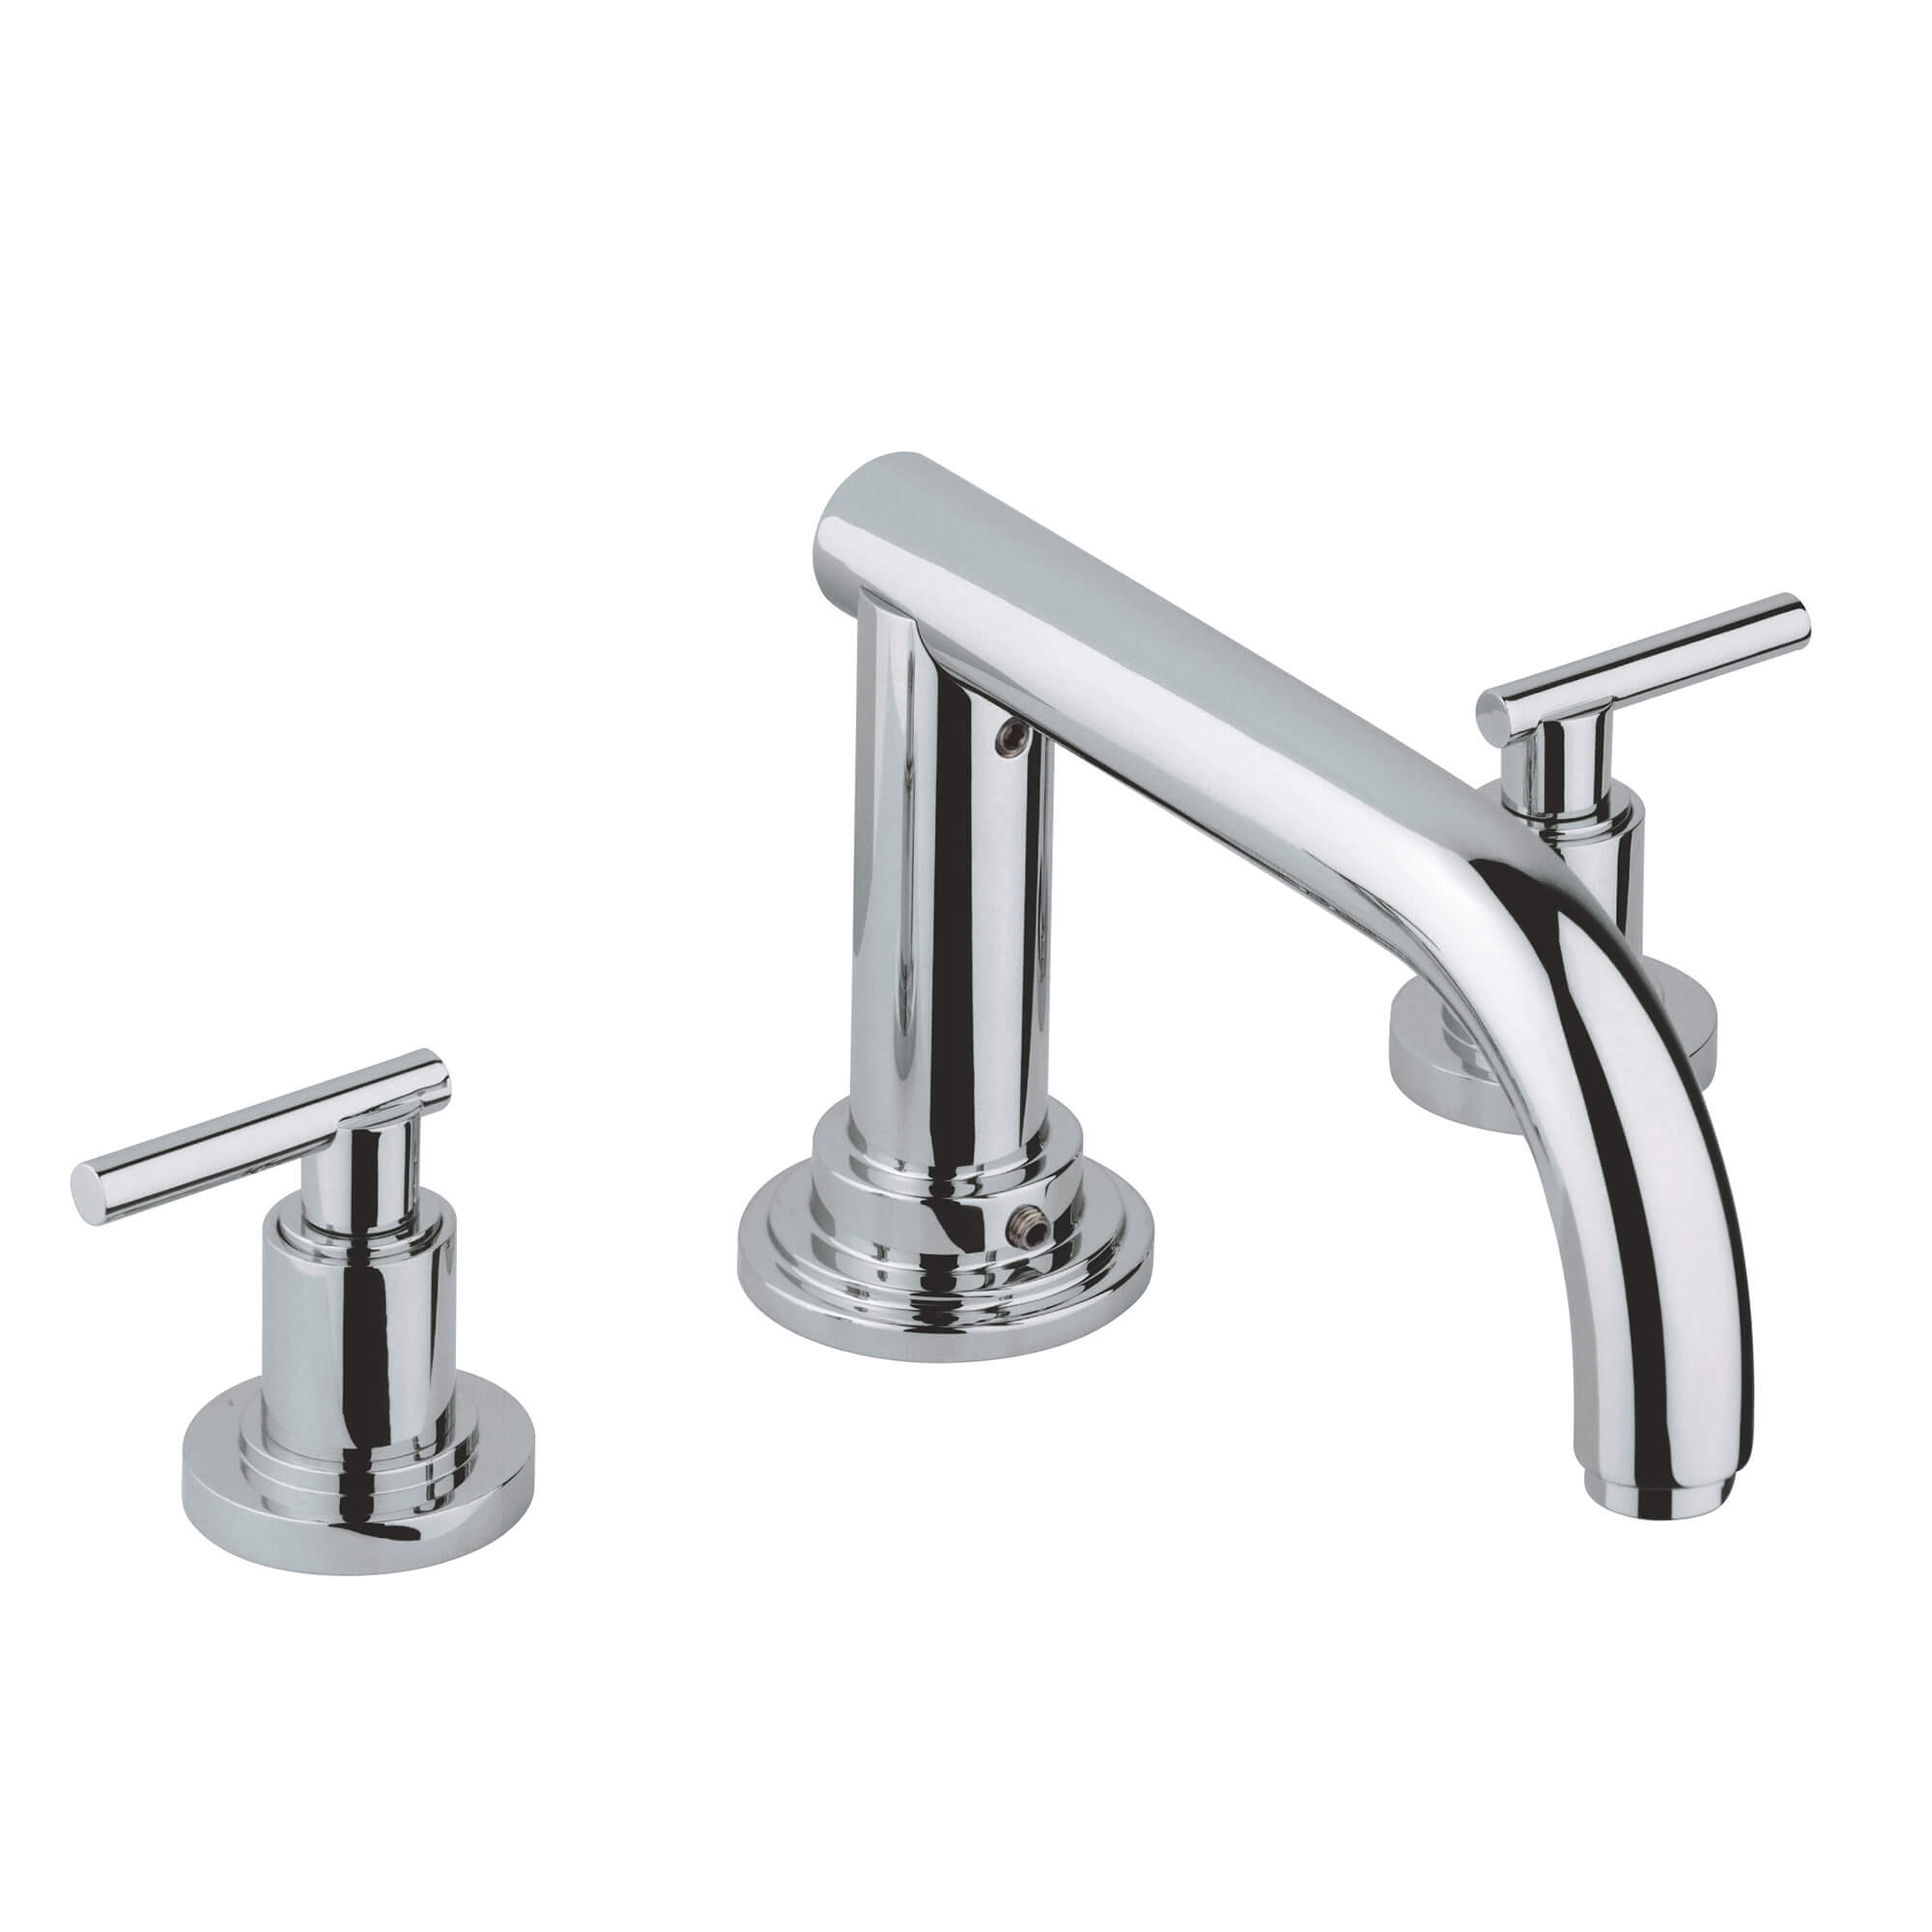 Lever Handles Sold in Pairs GROHE CHROME